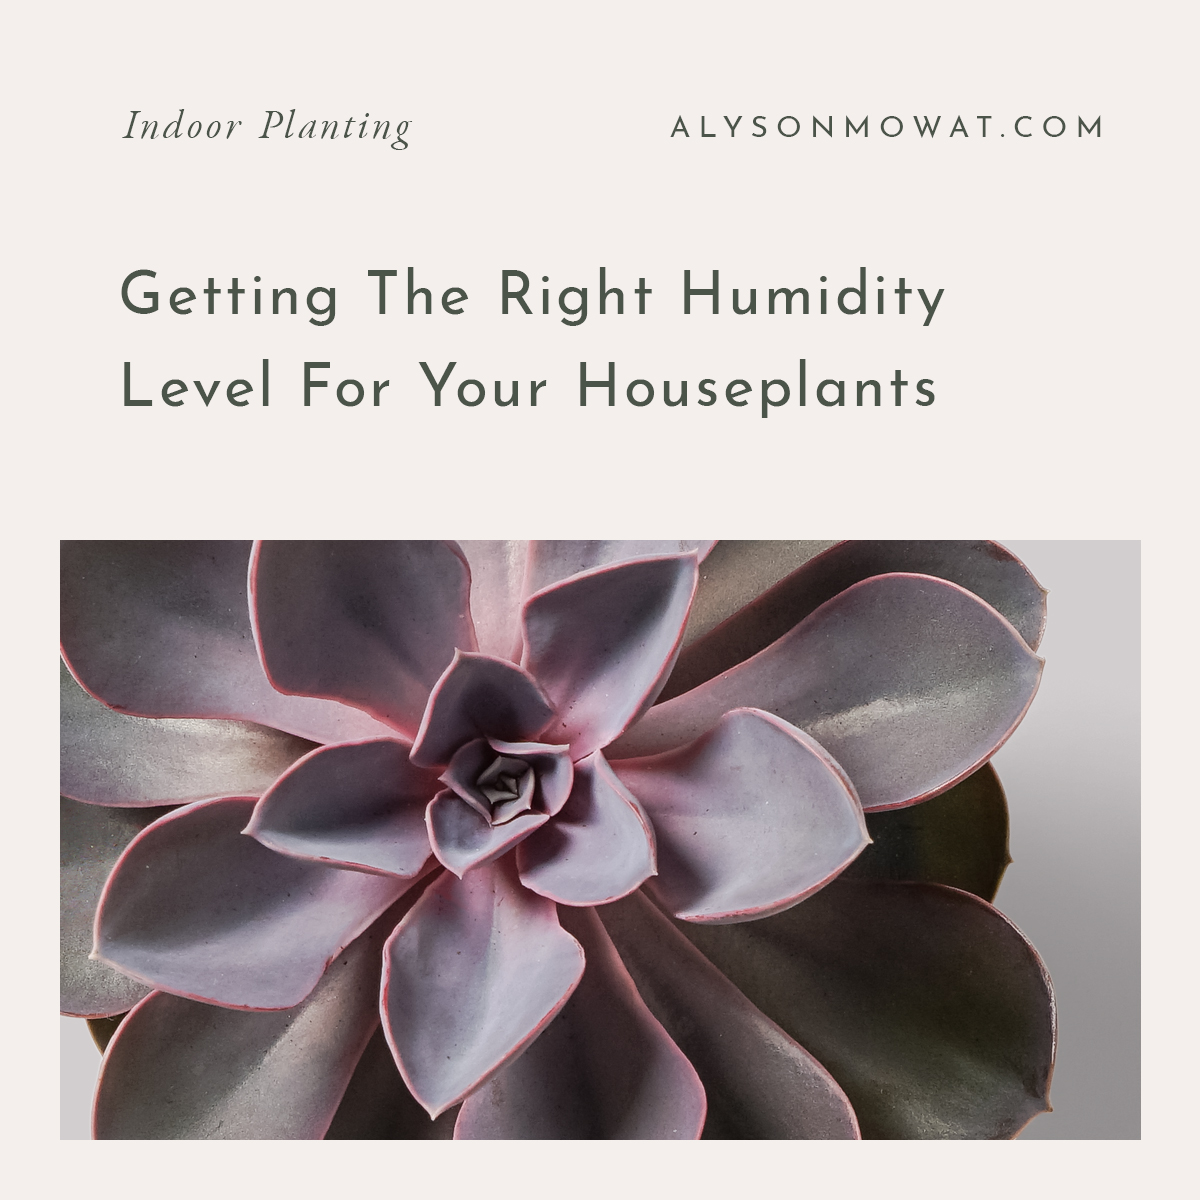 Getting The Right Humidity Level for Your Houseplants